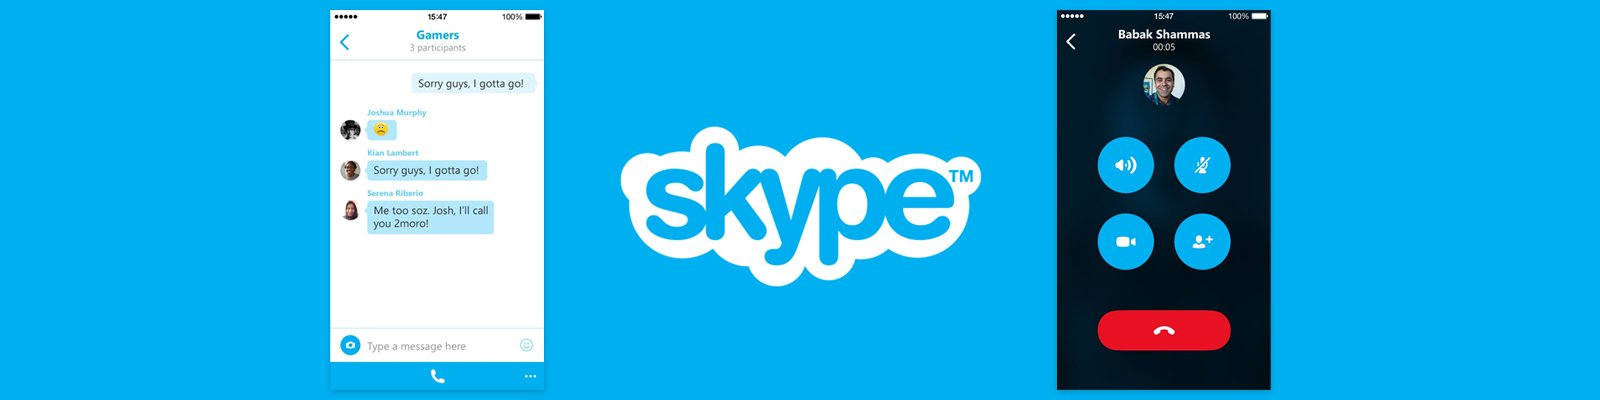 skype development